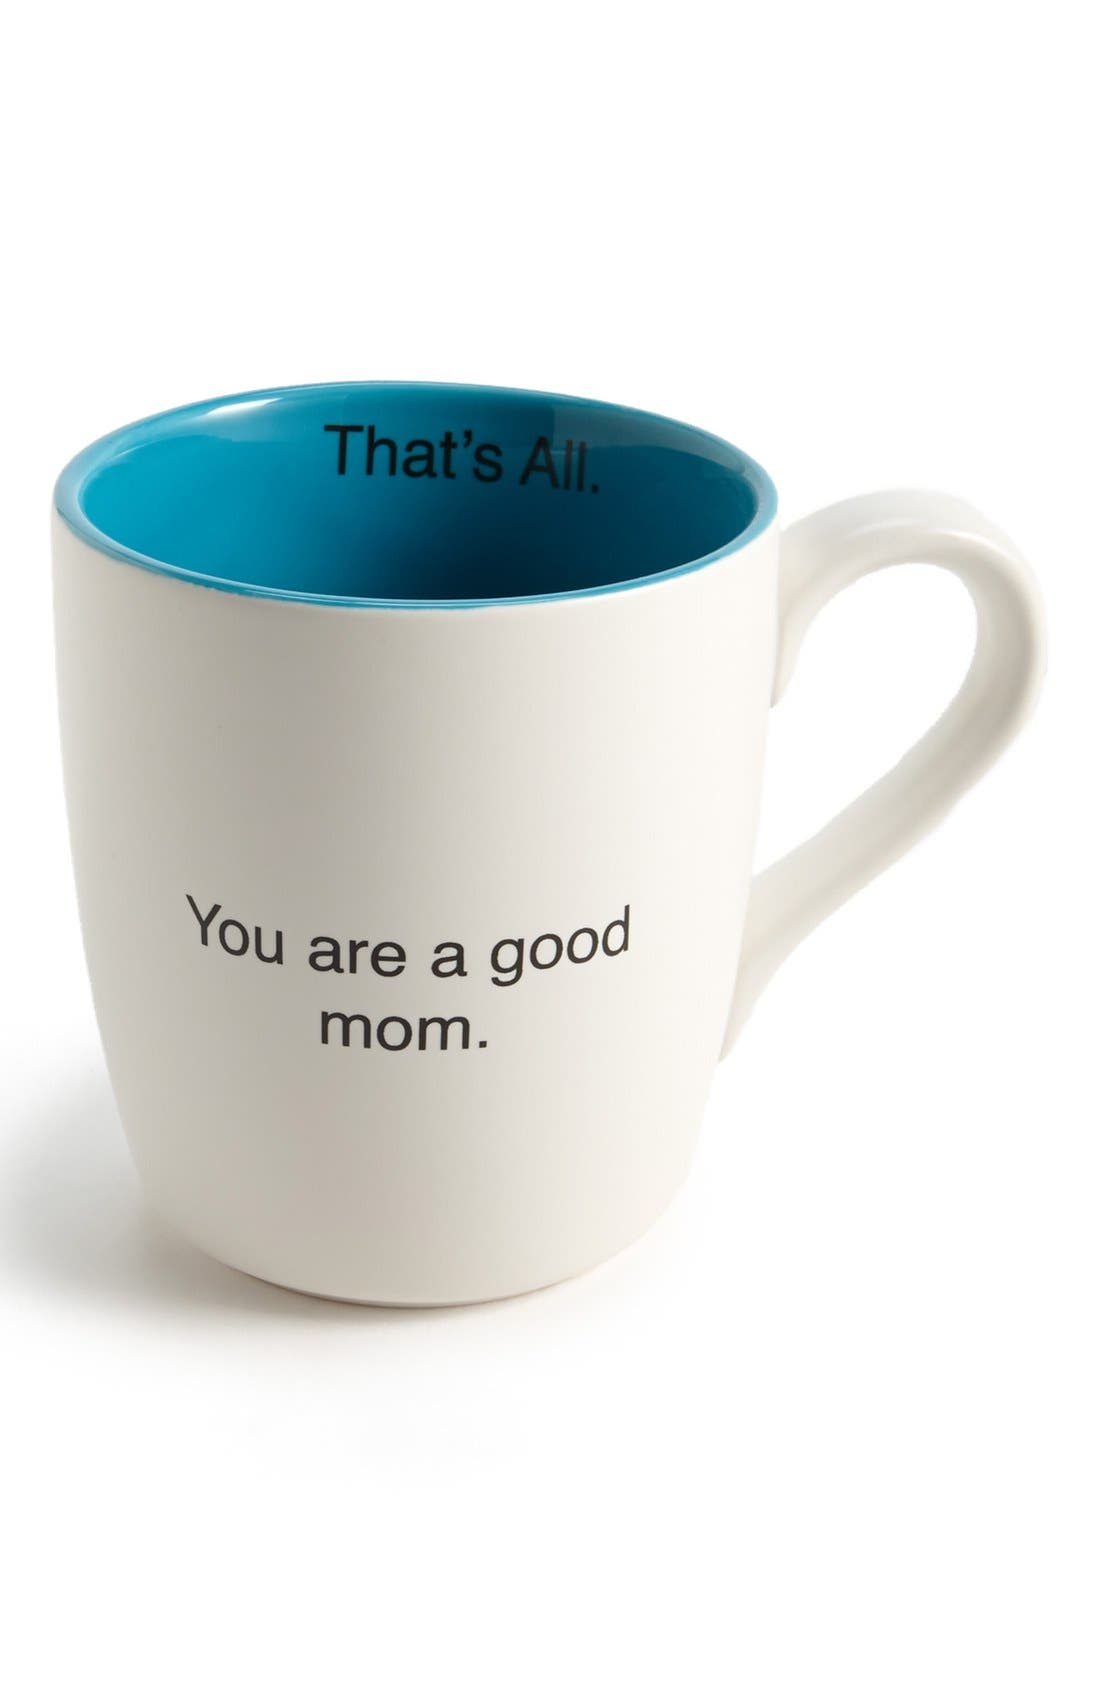 Main Image - 'That's All - You Are a Good Mom' Mug